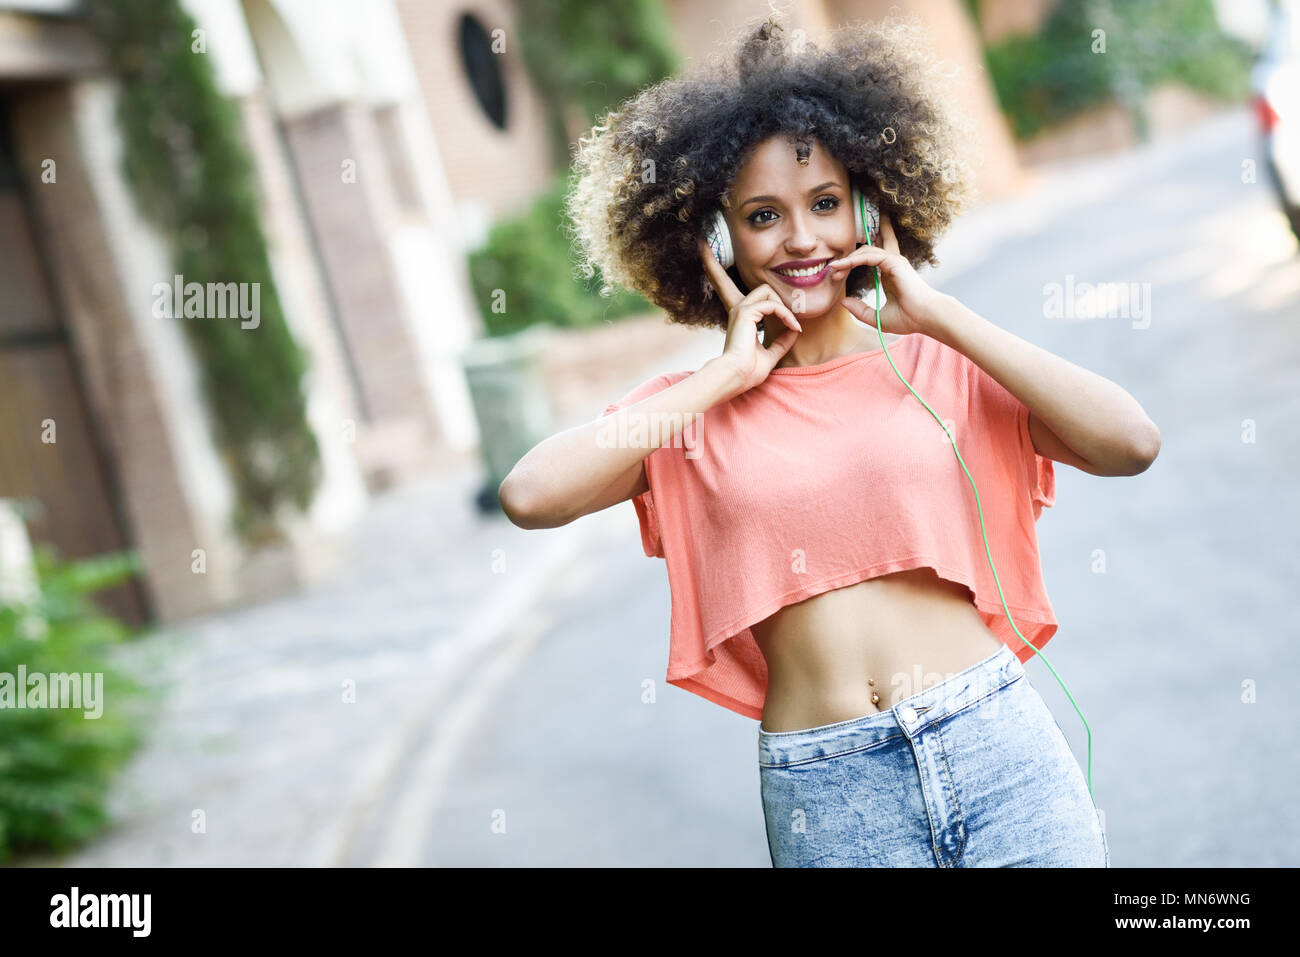 Portrait Of Young Attractive Black Girl In Urban Background